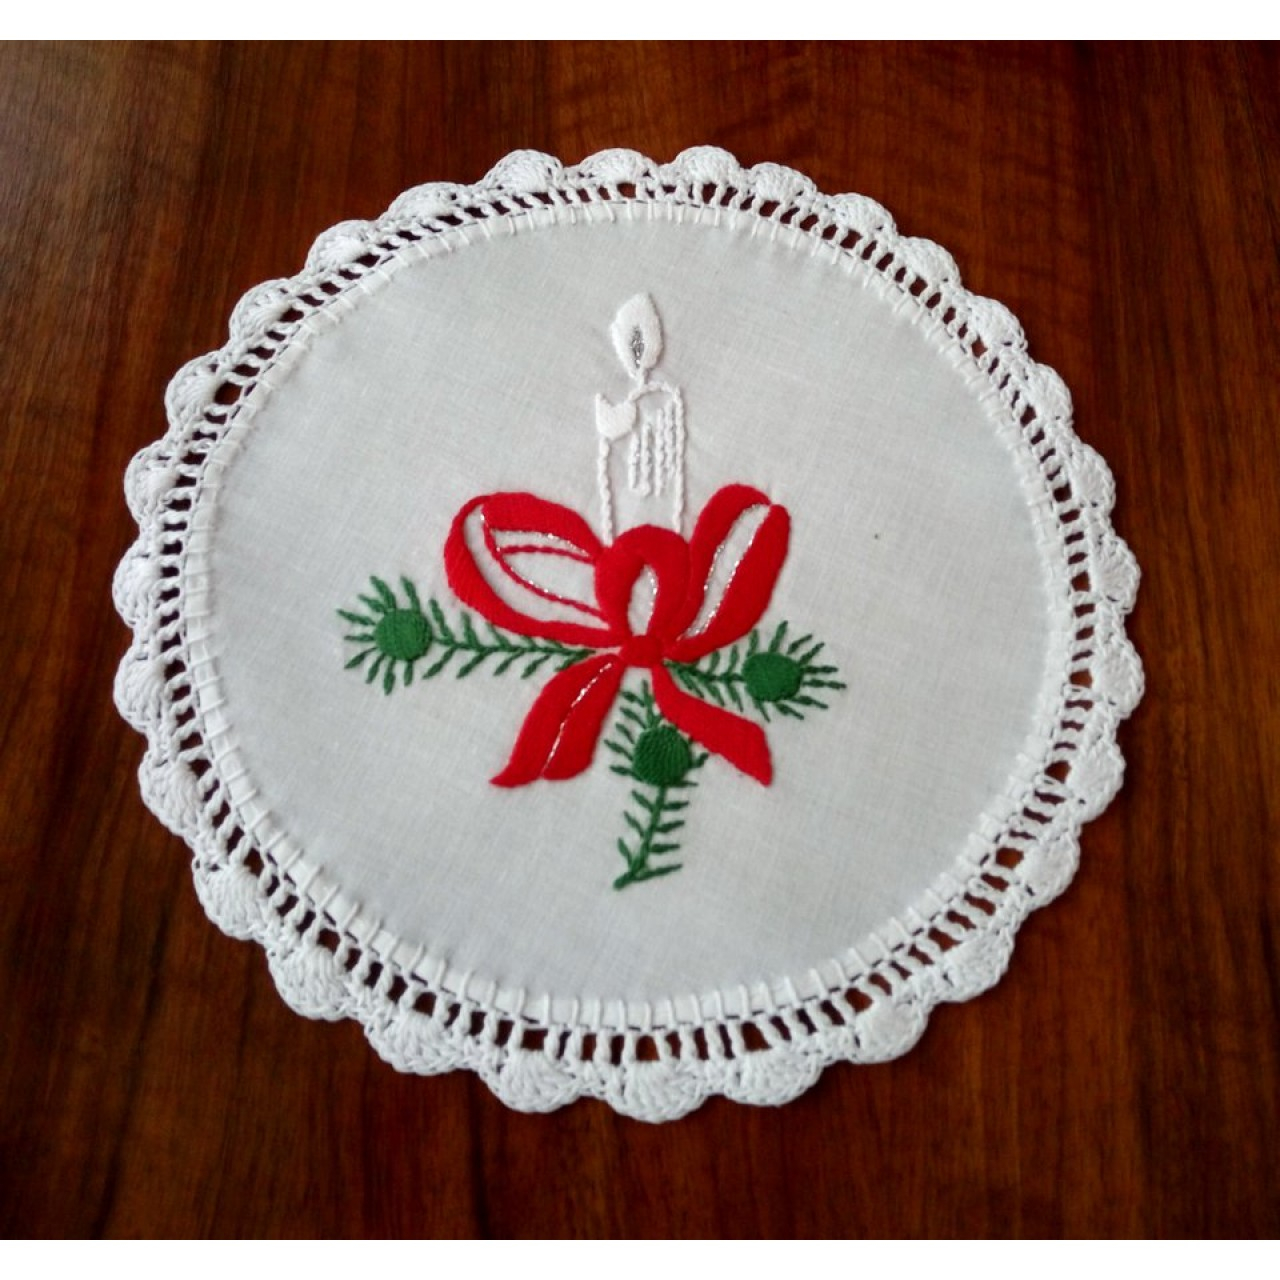 Hand Embroidery Christmas Patterns Christmas Ornament With Candle Chr Doi 333